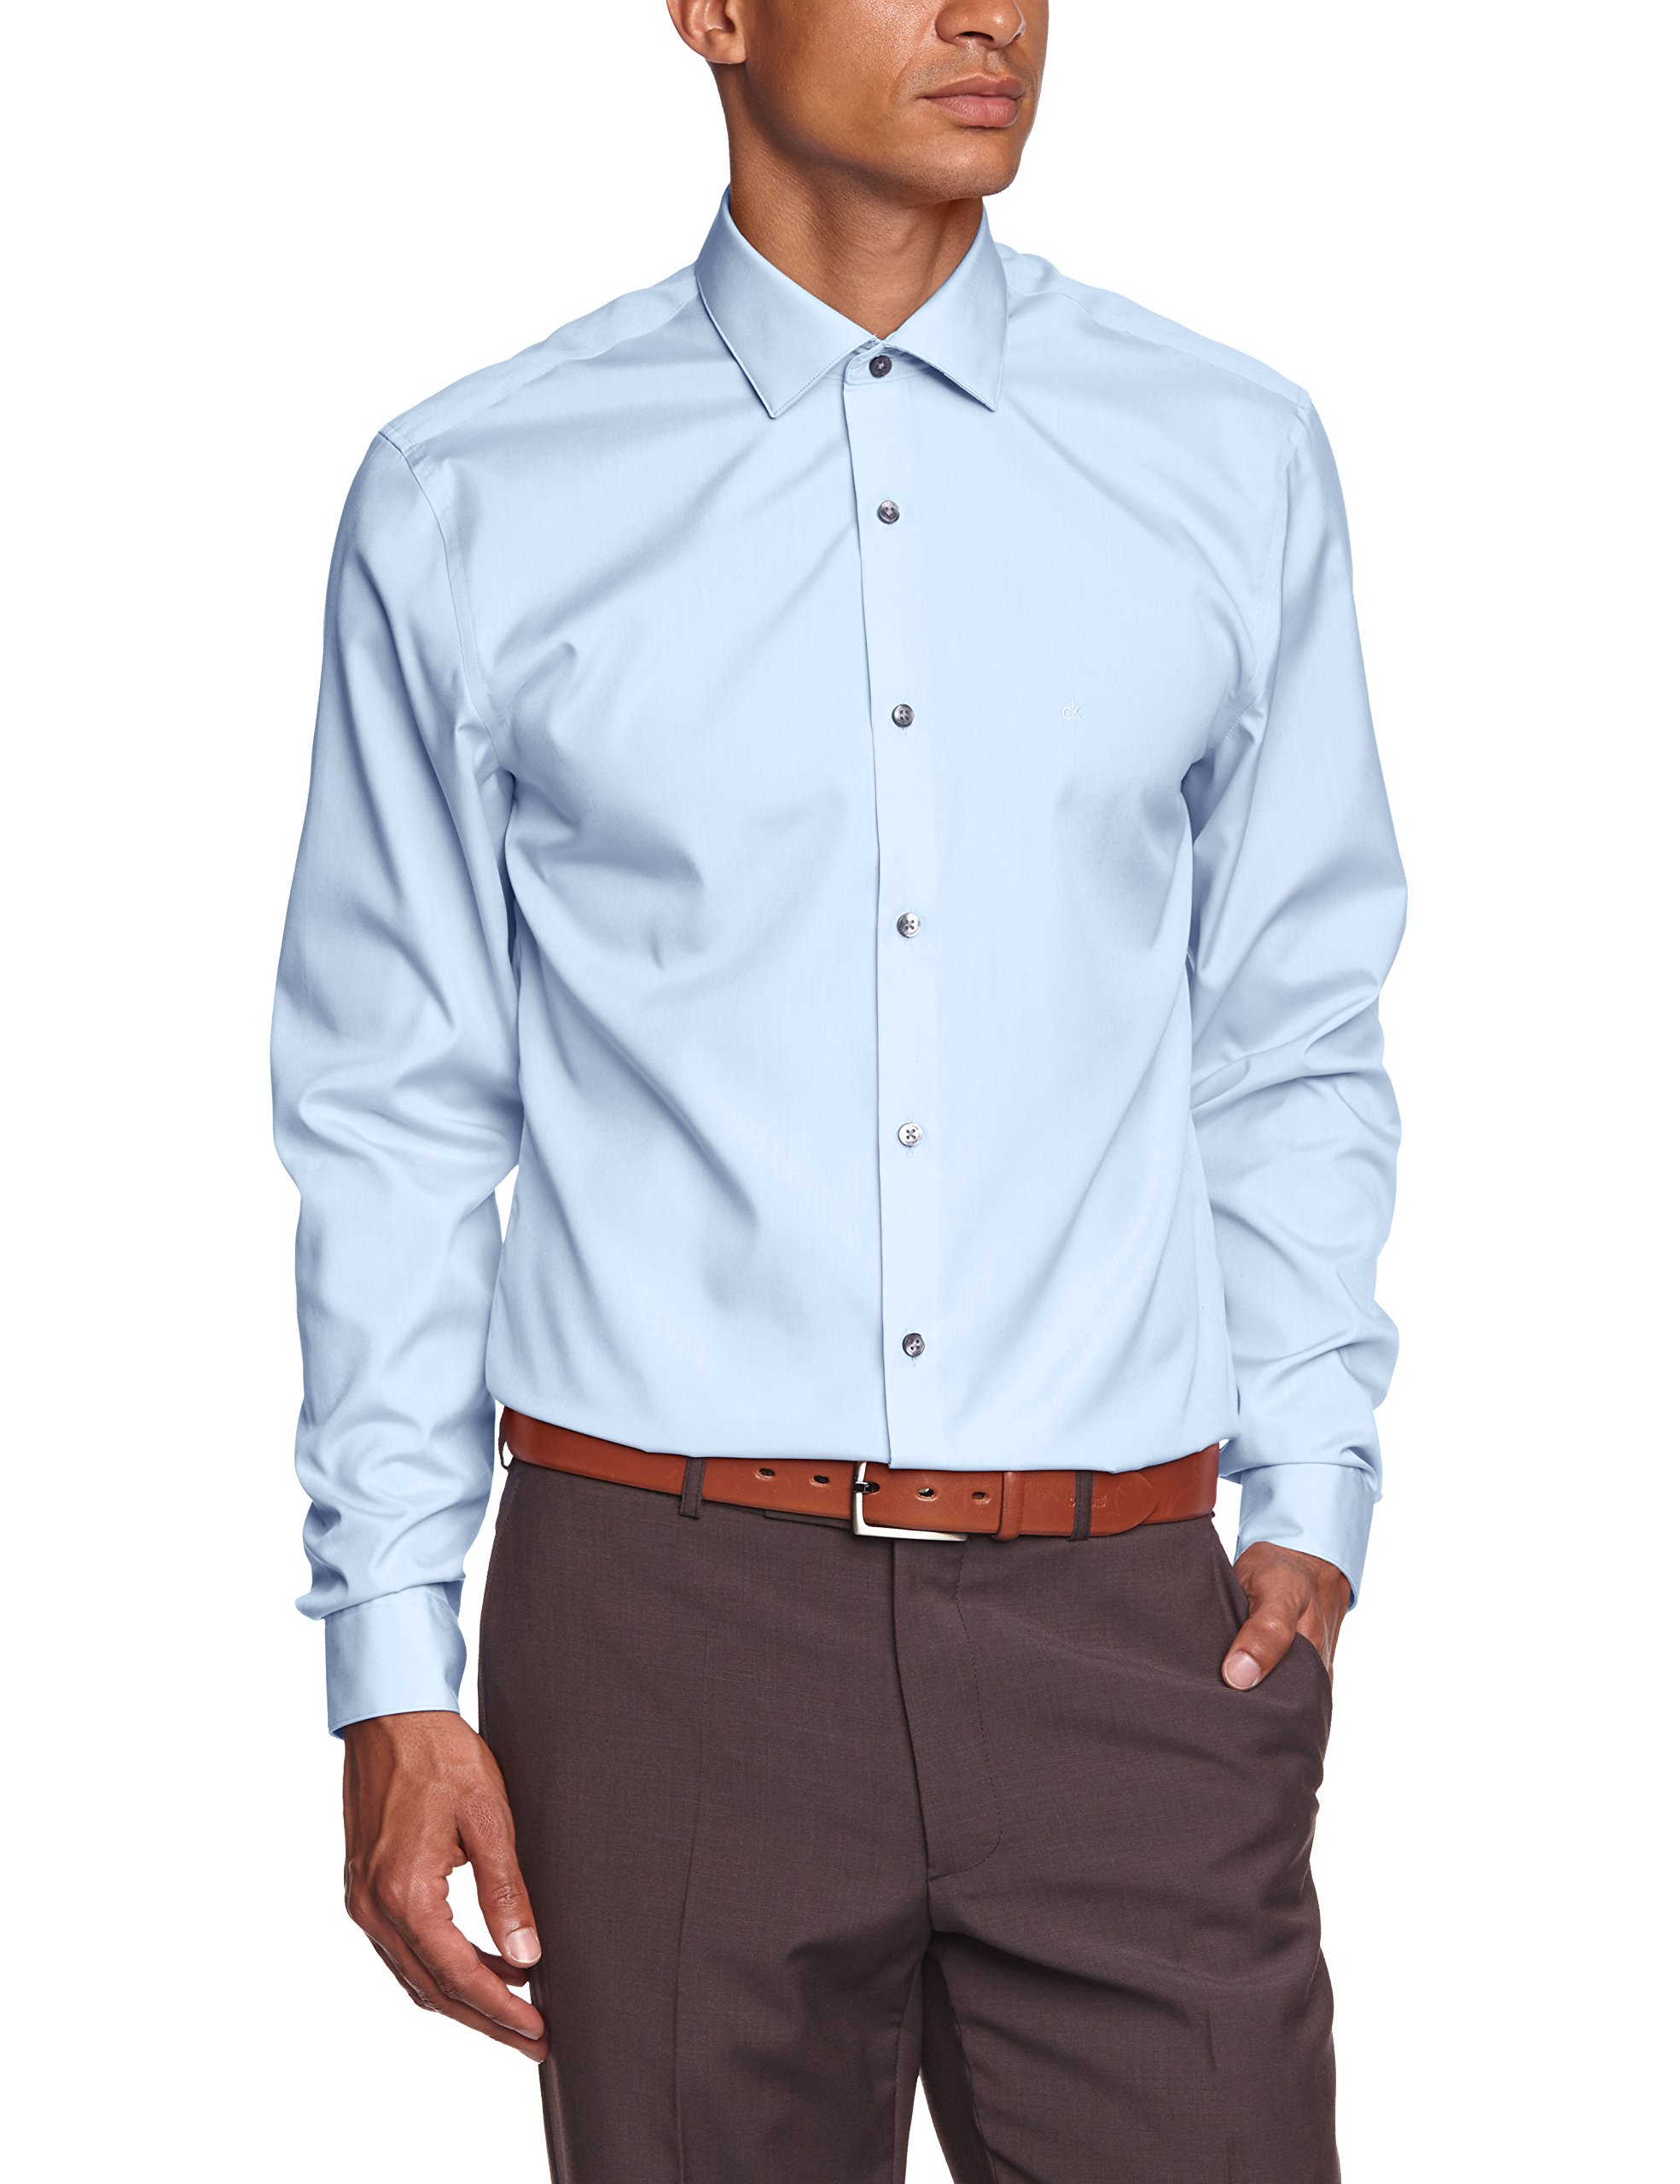 Cannes Calvin Fabricant45Homme Klein BusinessBleusoft Fitted Ftc Chemise Blue39taille vIYf76gbym